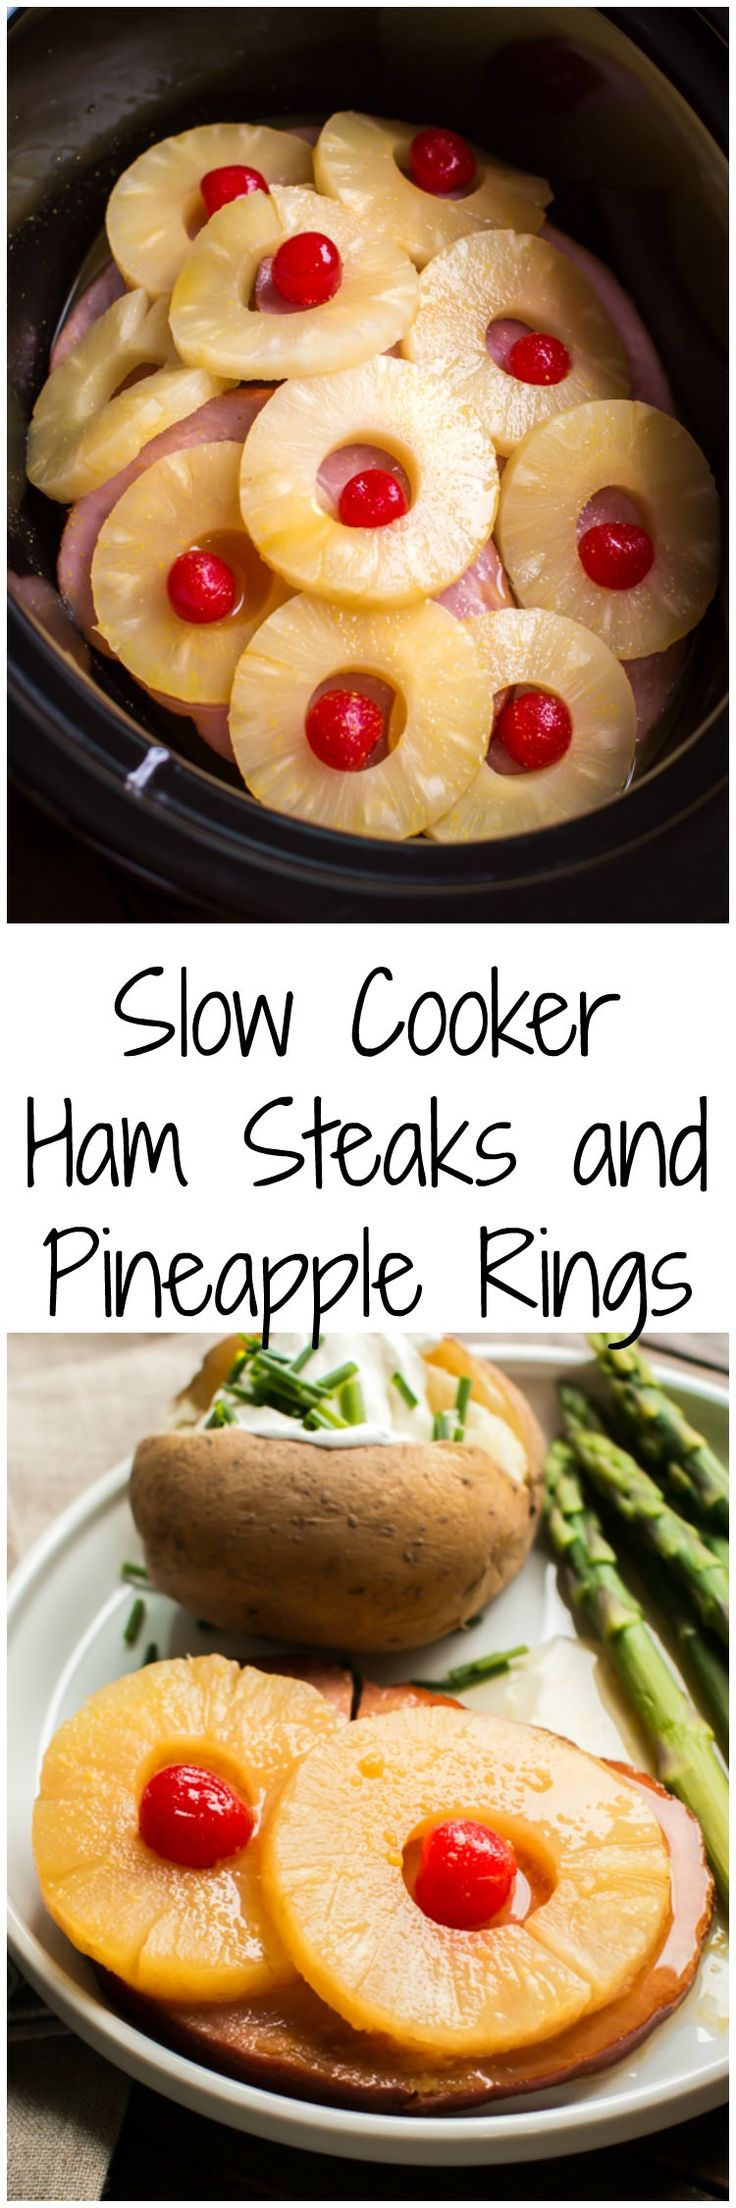 Slow Cooker Ham and Pineapple Rings